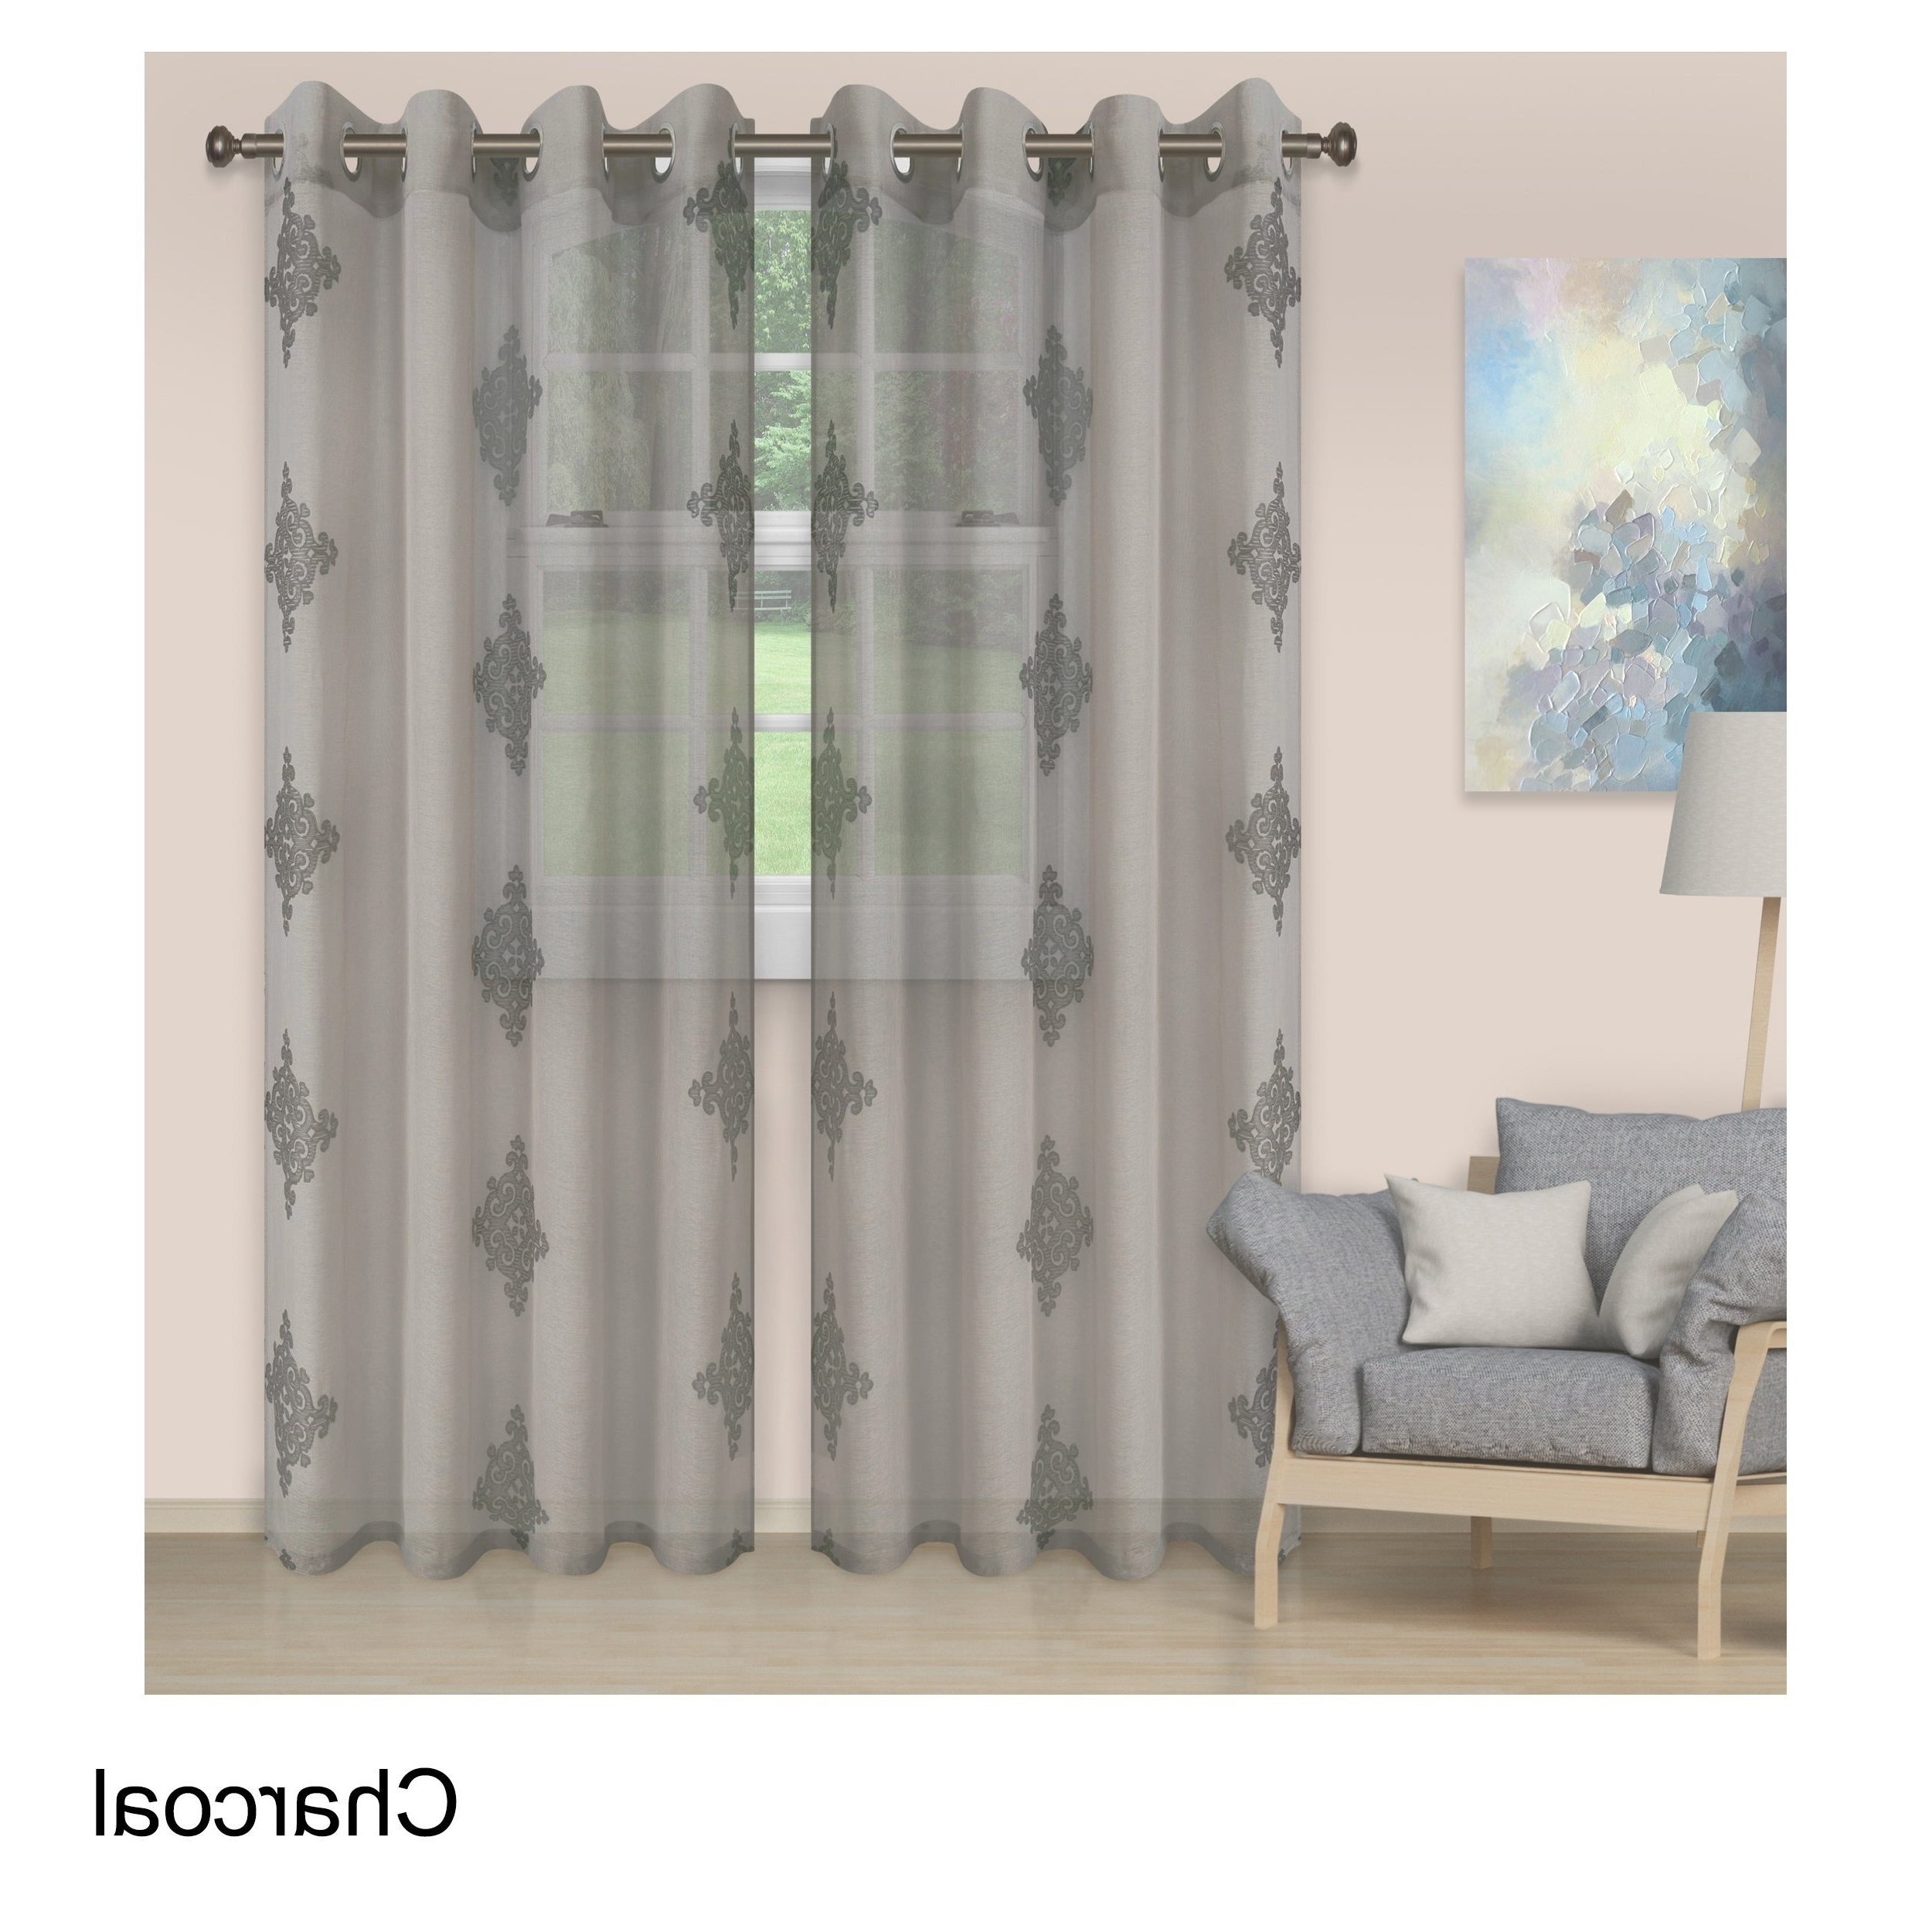 Newest Superior Embroidered Damask Sheer Grommet Curtain Panel Pair With Overseas Leaf Swirl Embroidered Curtain Panel Pairs (View 15 of 21)